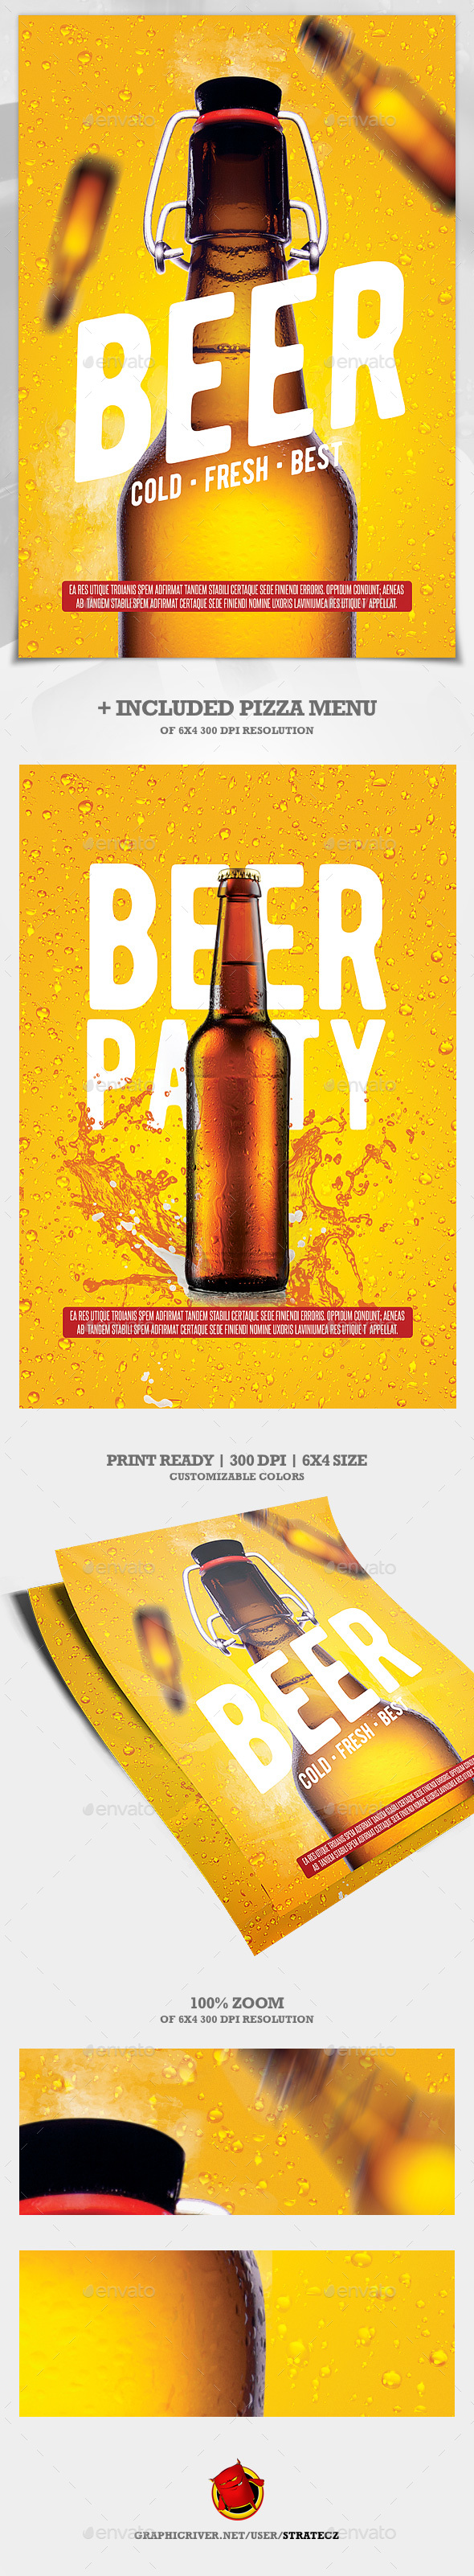 Beer Flyer / Beer Party Flyer - Flyers Print Templates